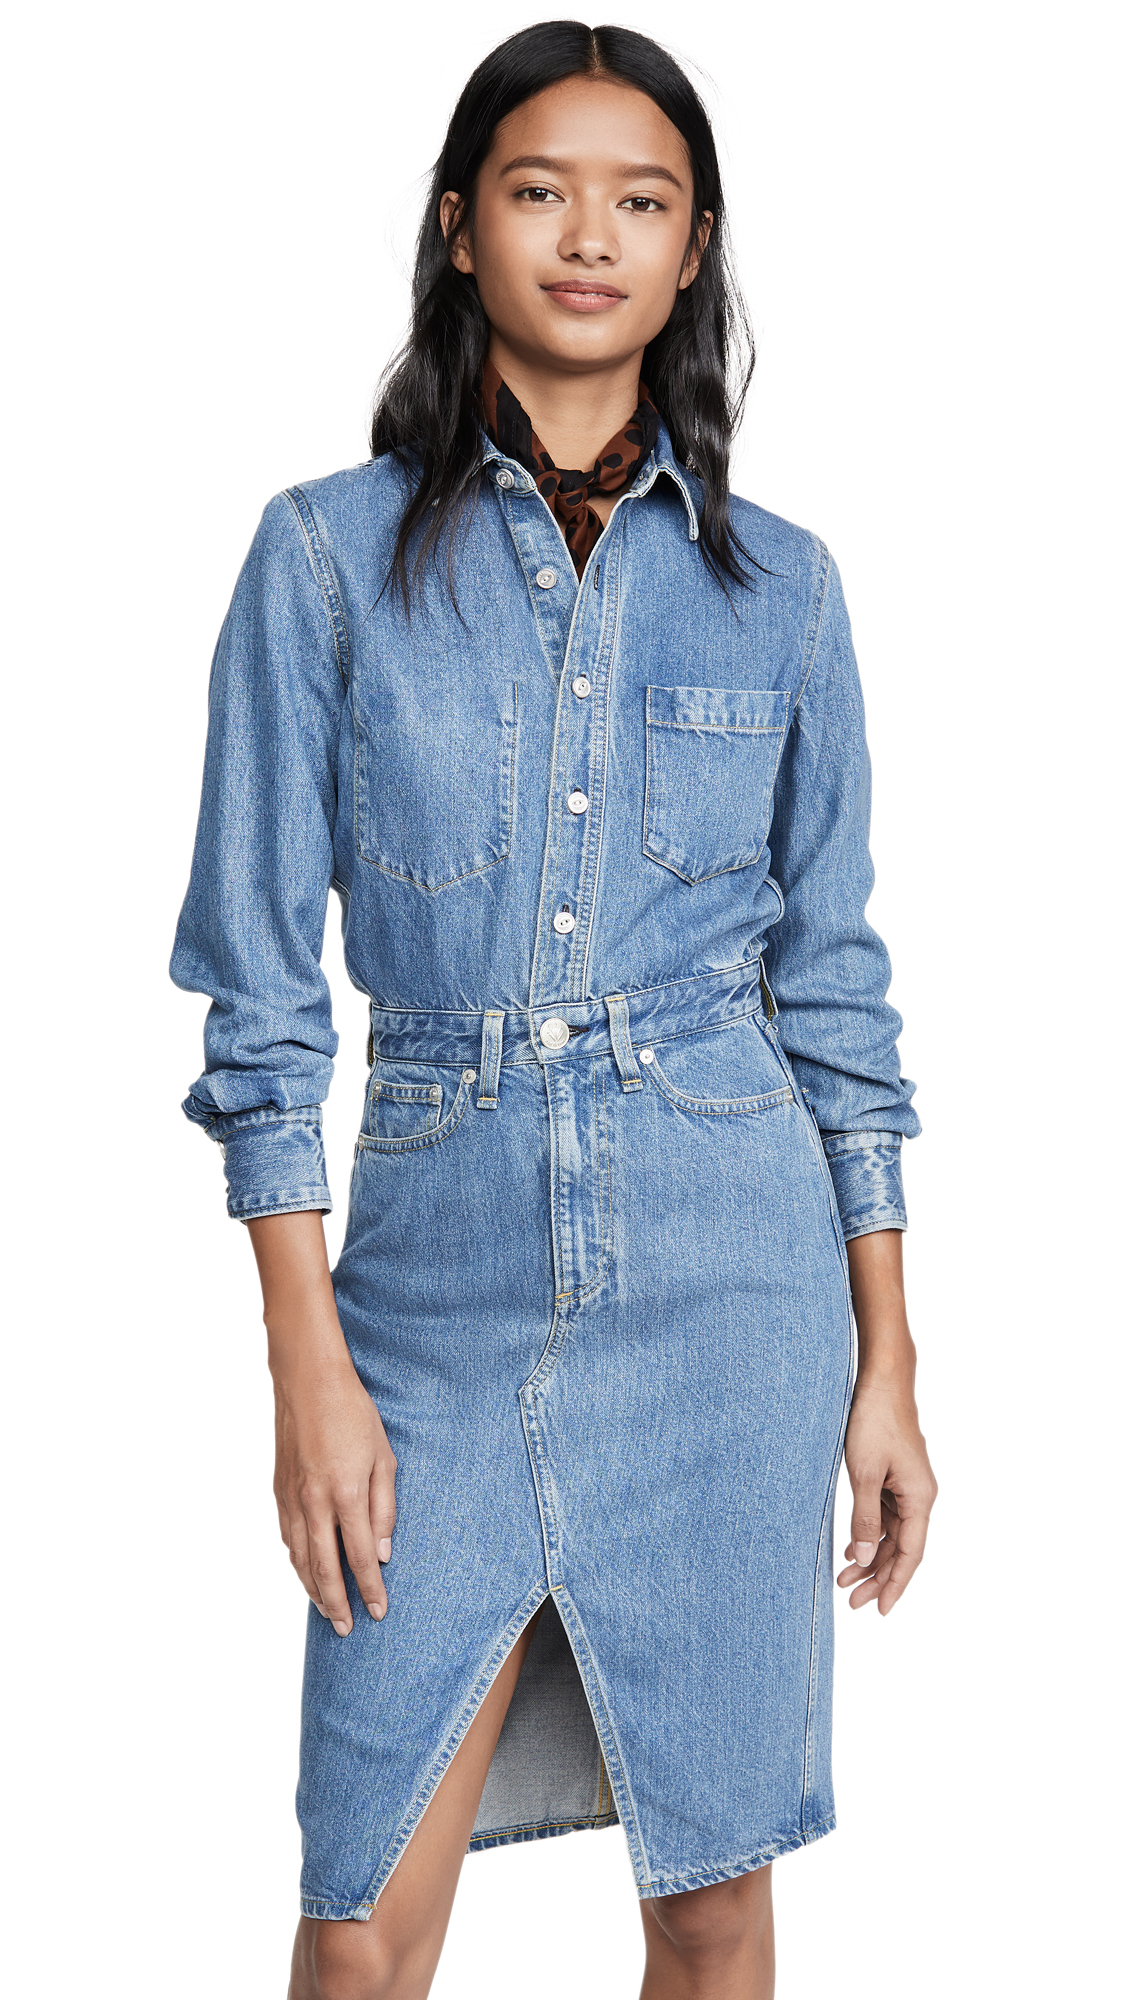 Buy Rag & Bone/JEAN online - photo of Rag & Bone/JEAN All In One Dress